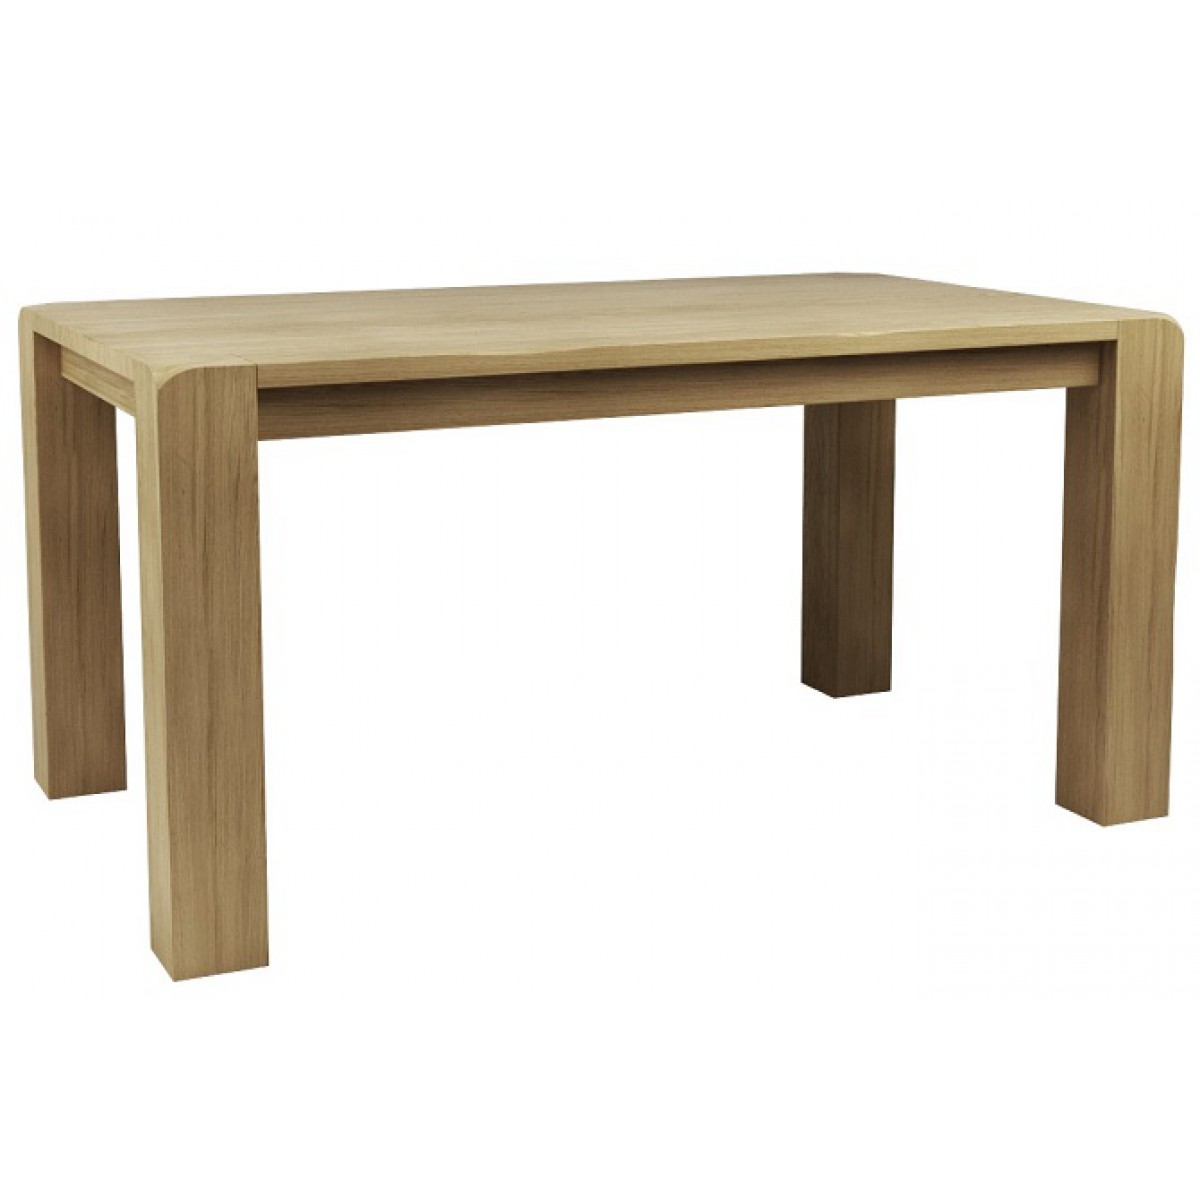 Vermont dining table vermont acacia extending 160cm for Table queens acacia